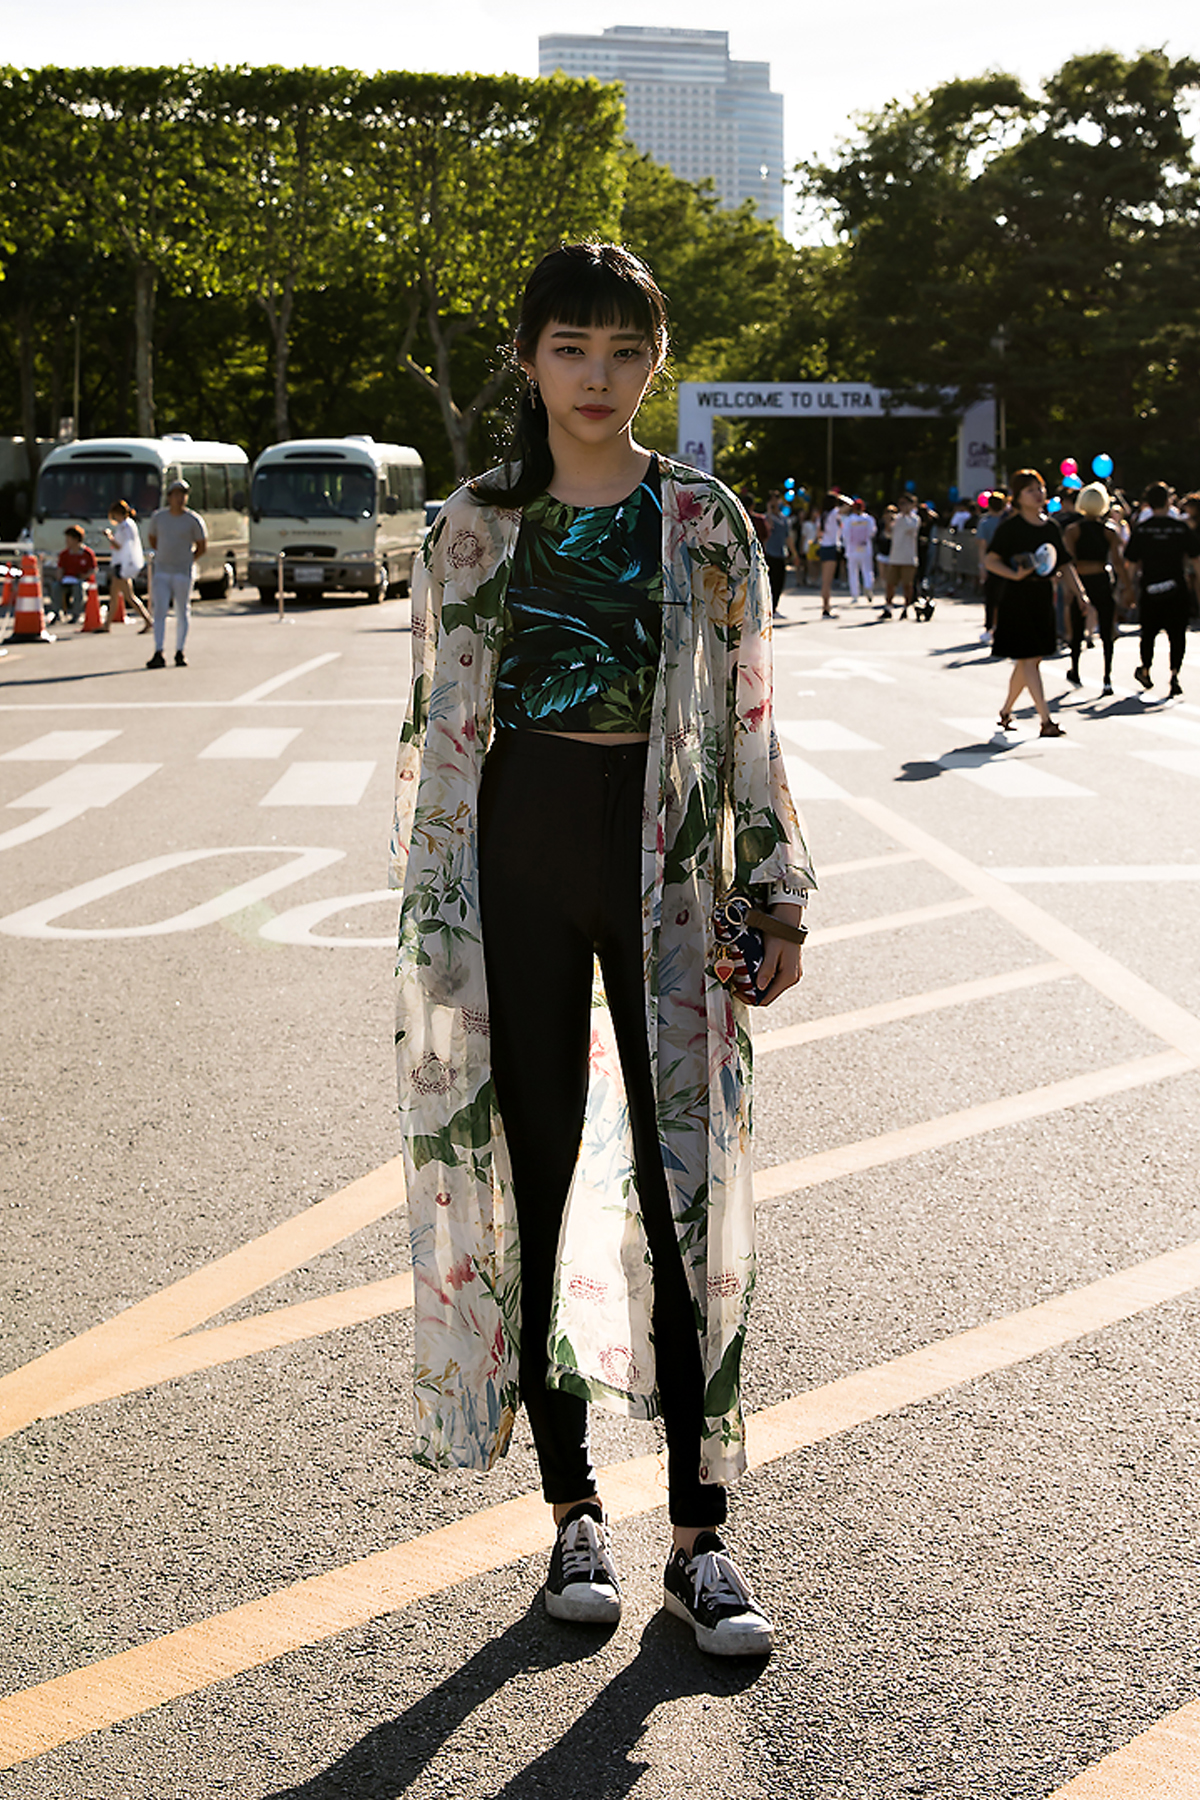 Kim Sunghee, Ultra Music Festival 2017 in Seoul.jpg